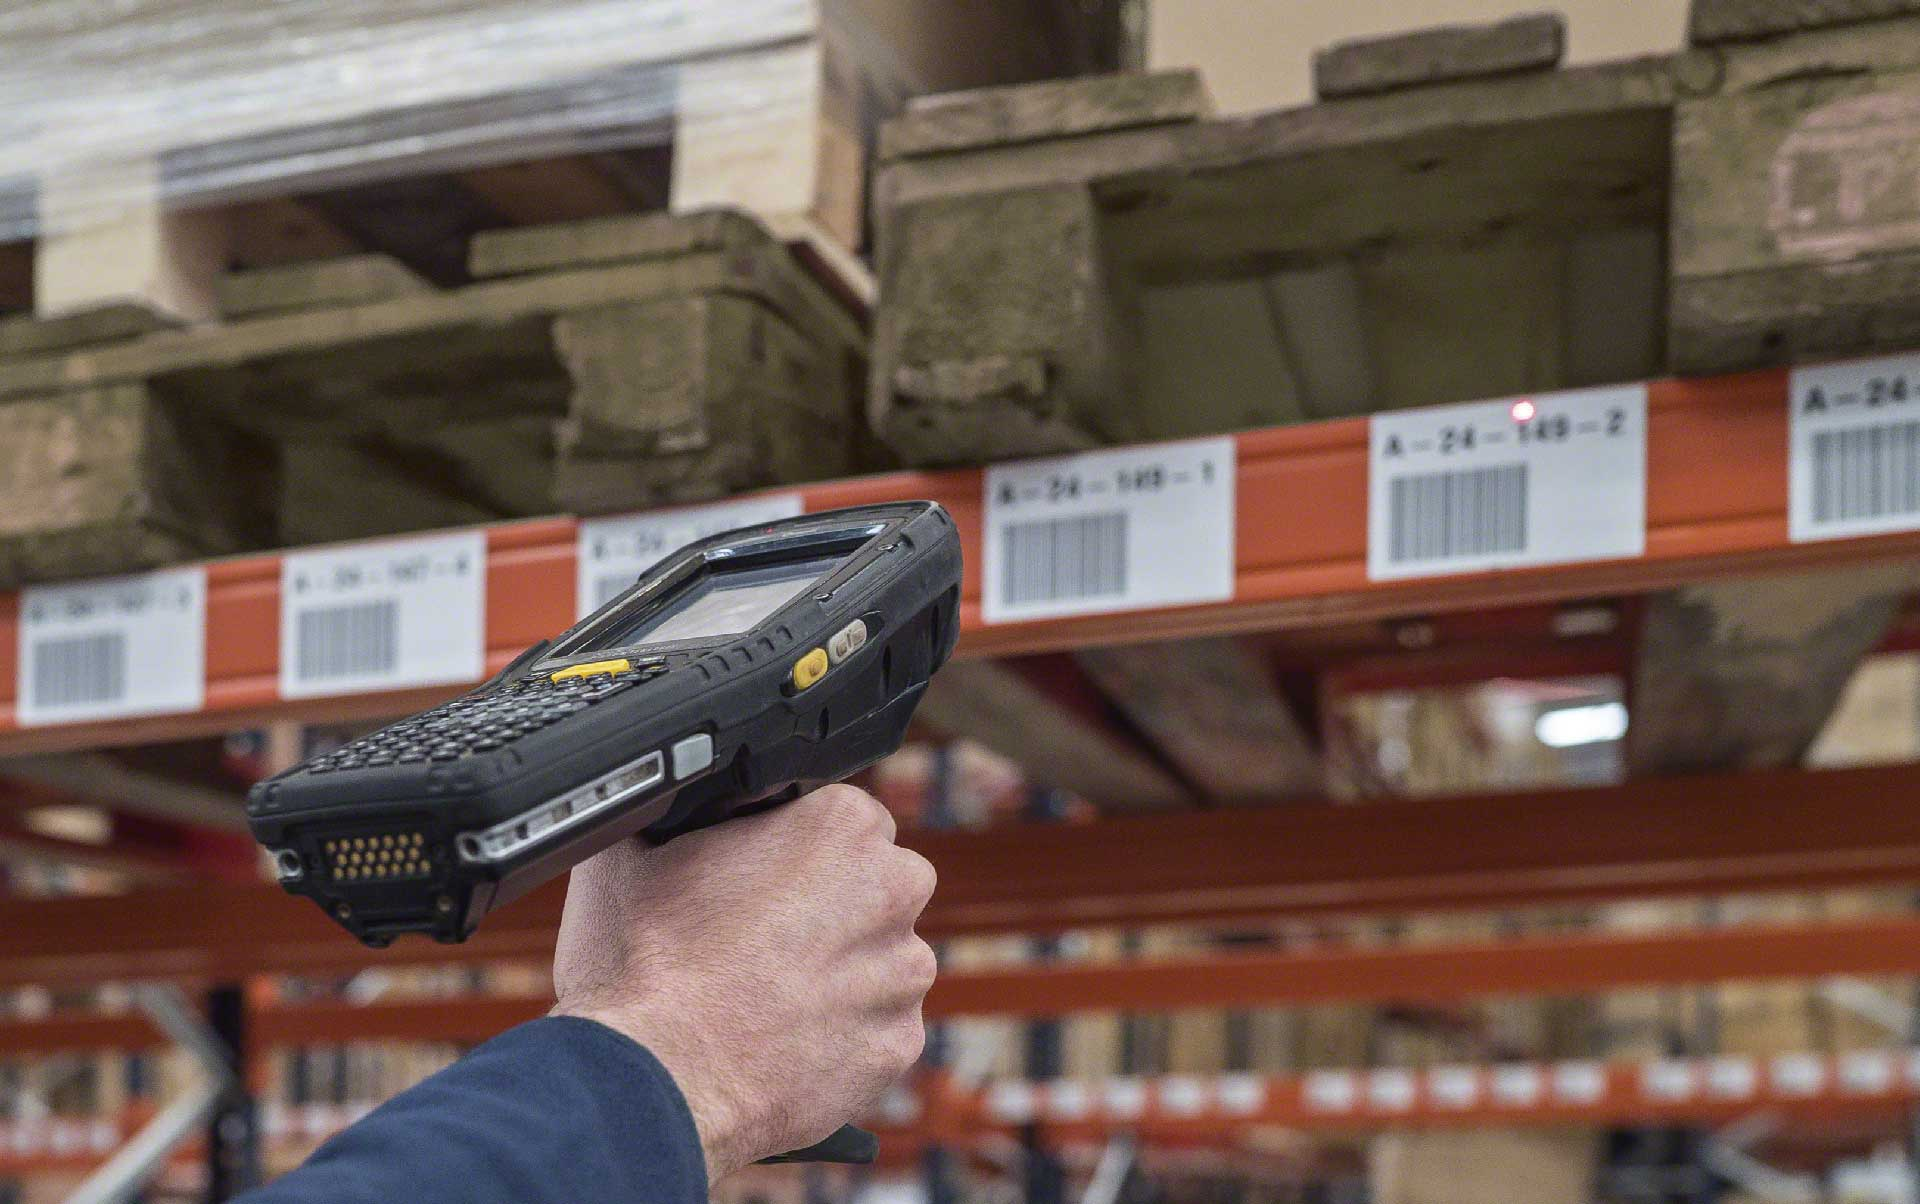 Innovation and traceability permeate the supply chain